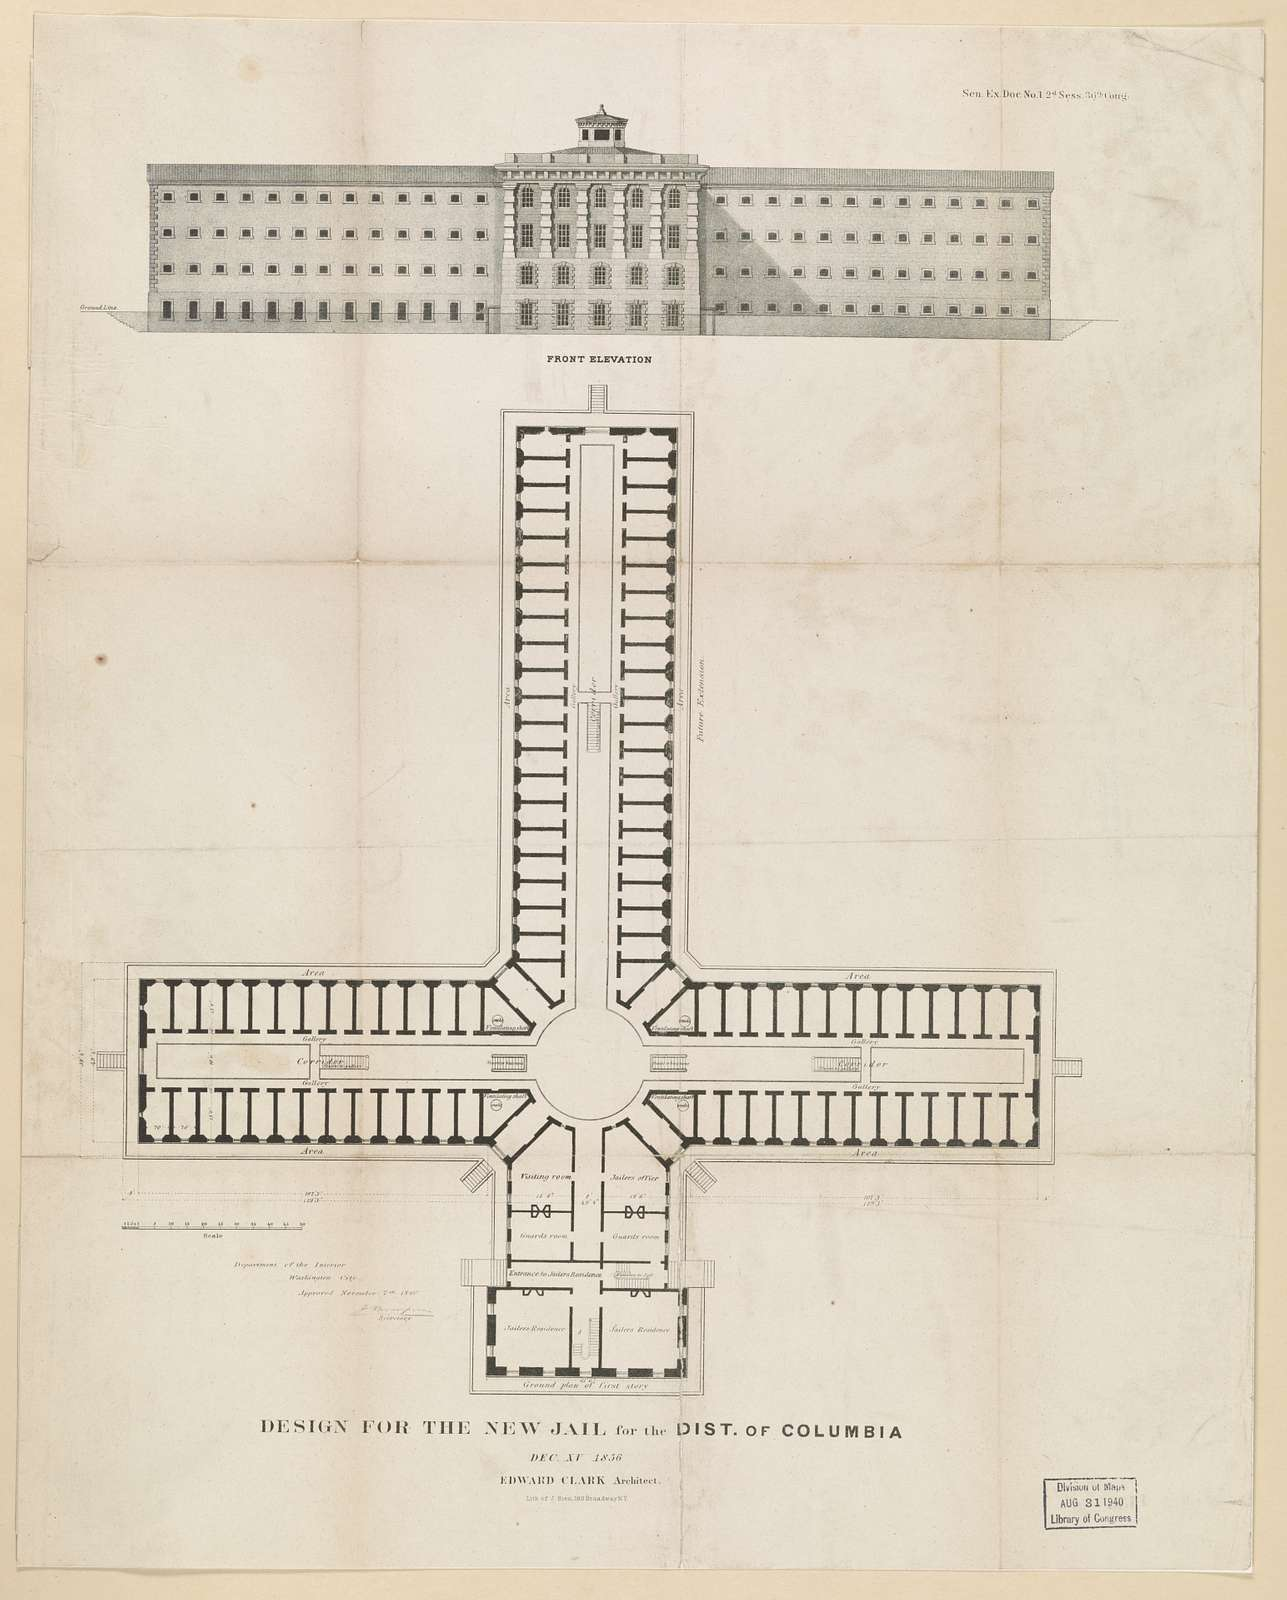 Design for the new jail for the Dist. of Columbia. Dec. XV 1856. Edward Clark architect